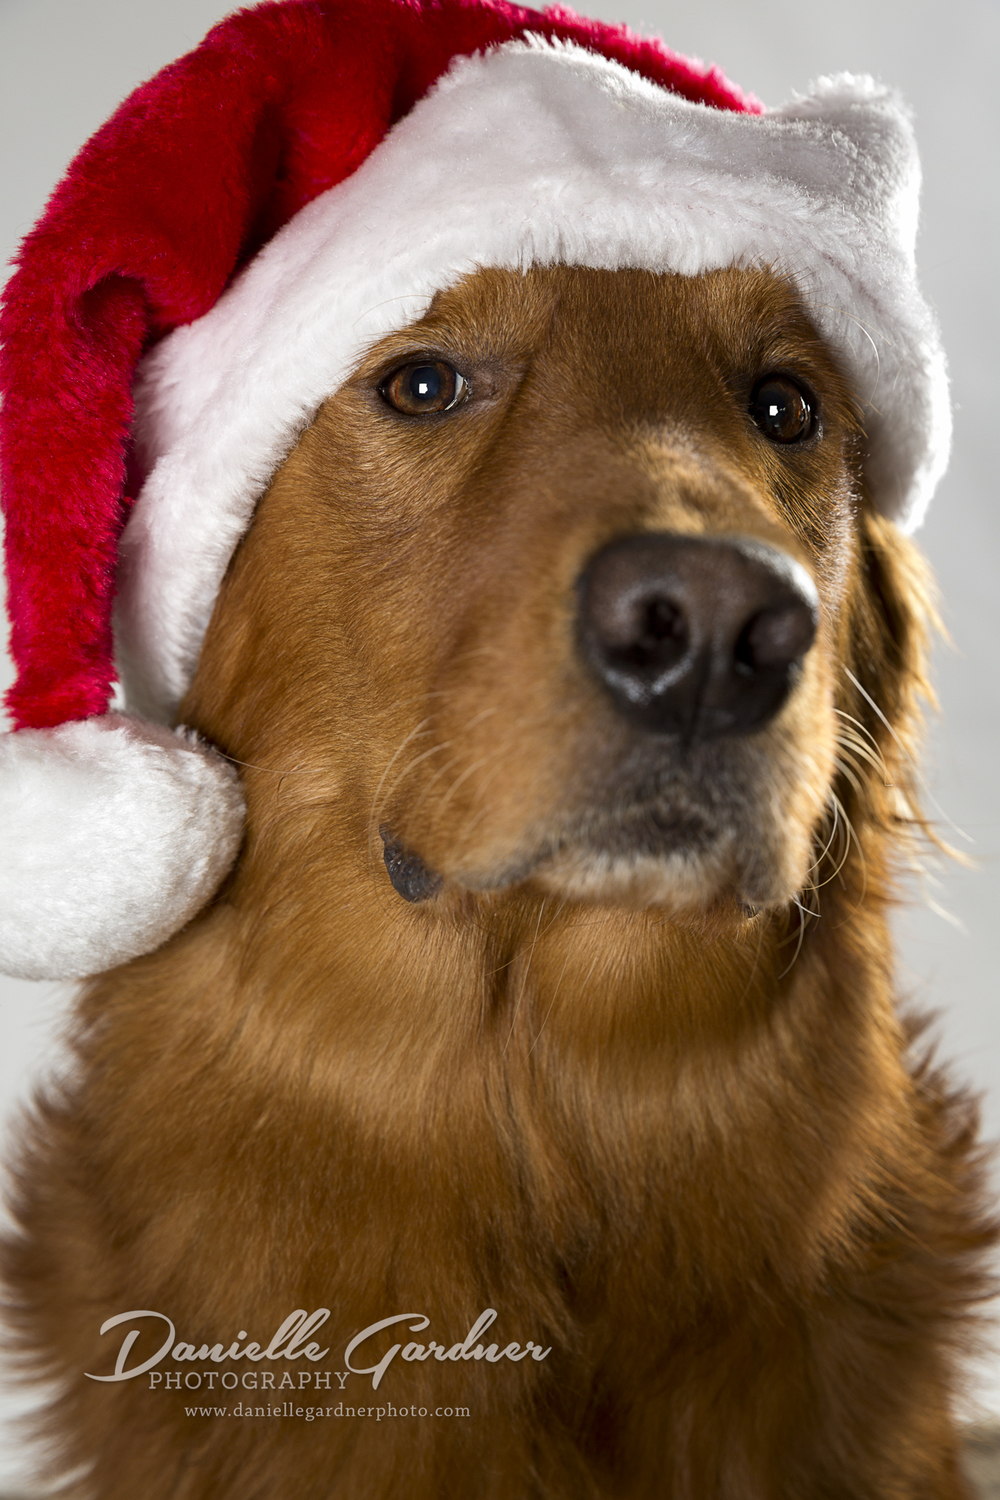 Atlanta_Pet Photography_Holiday_Danielle Gardner.jpg